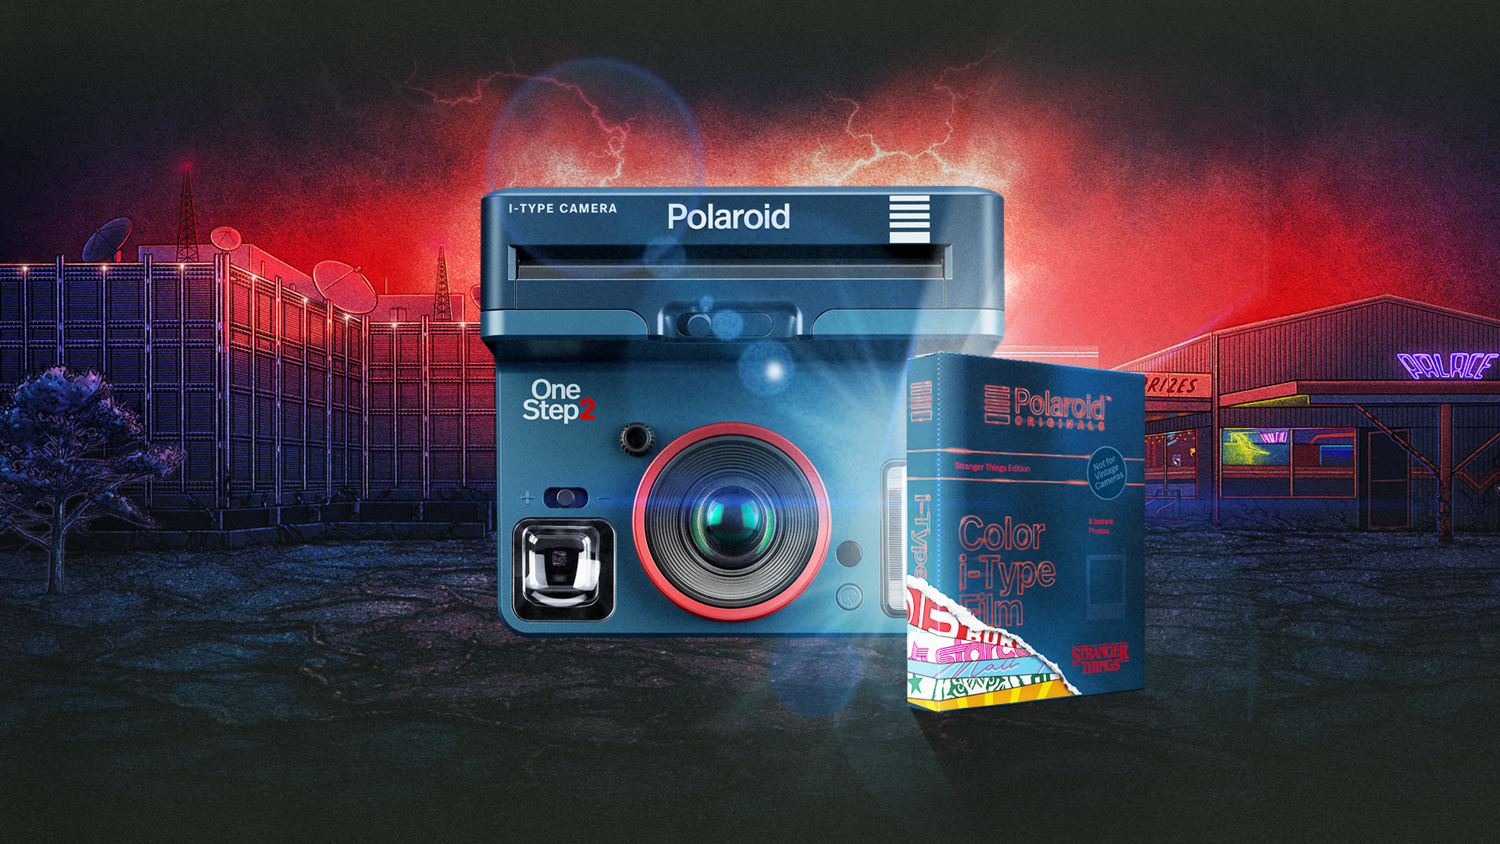 a promotional image for the Stranger Things Polaroid camera and film